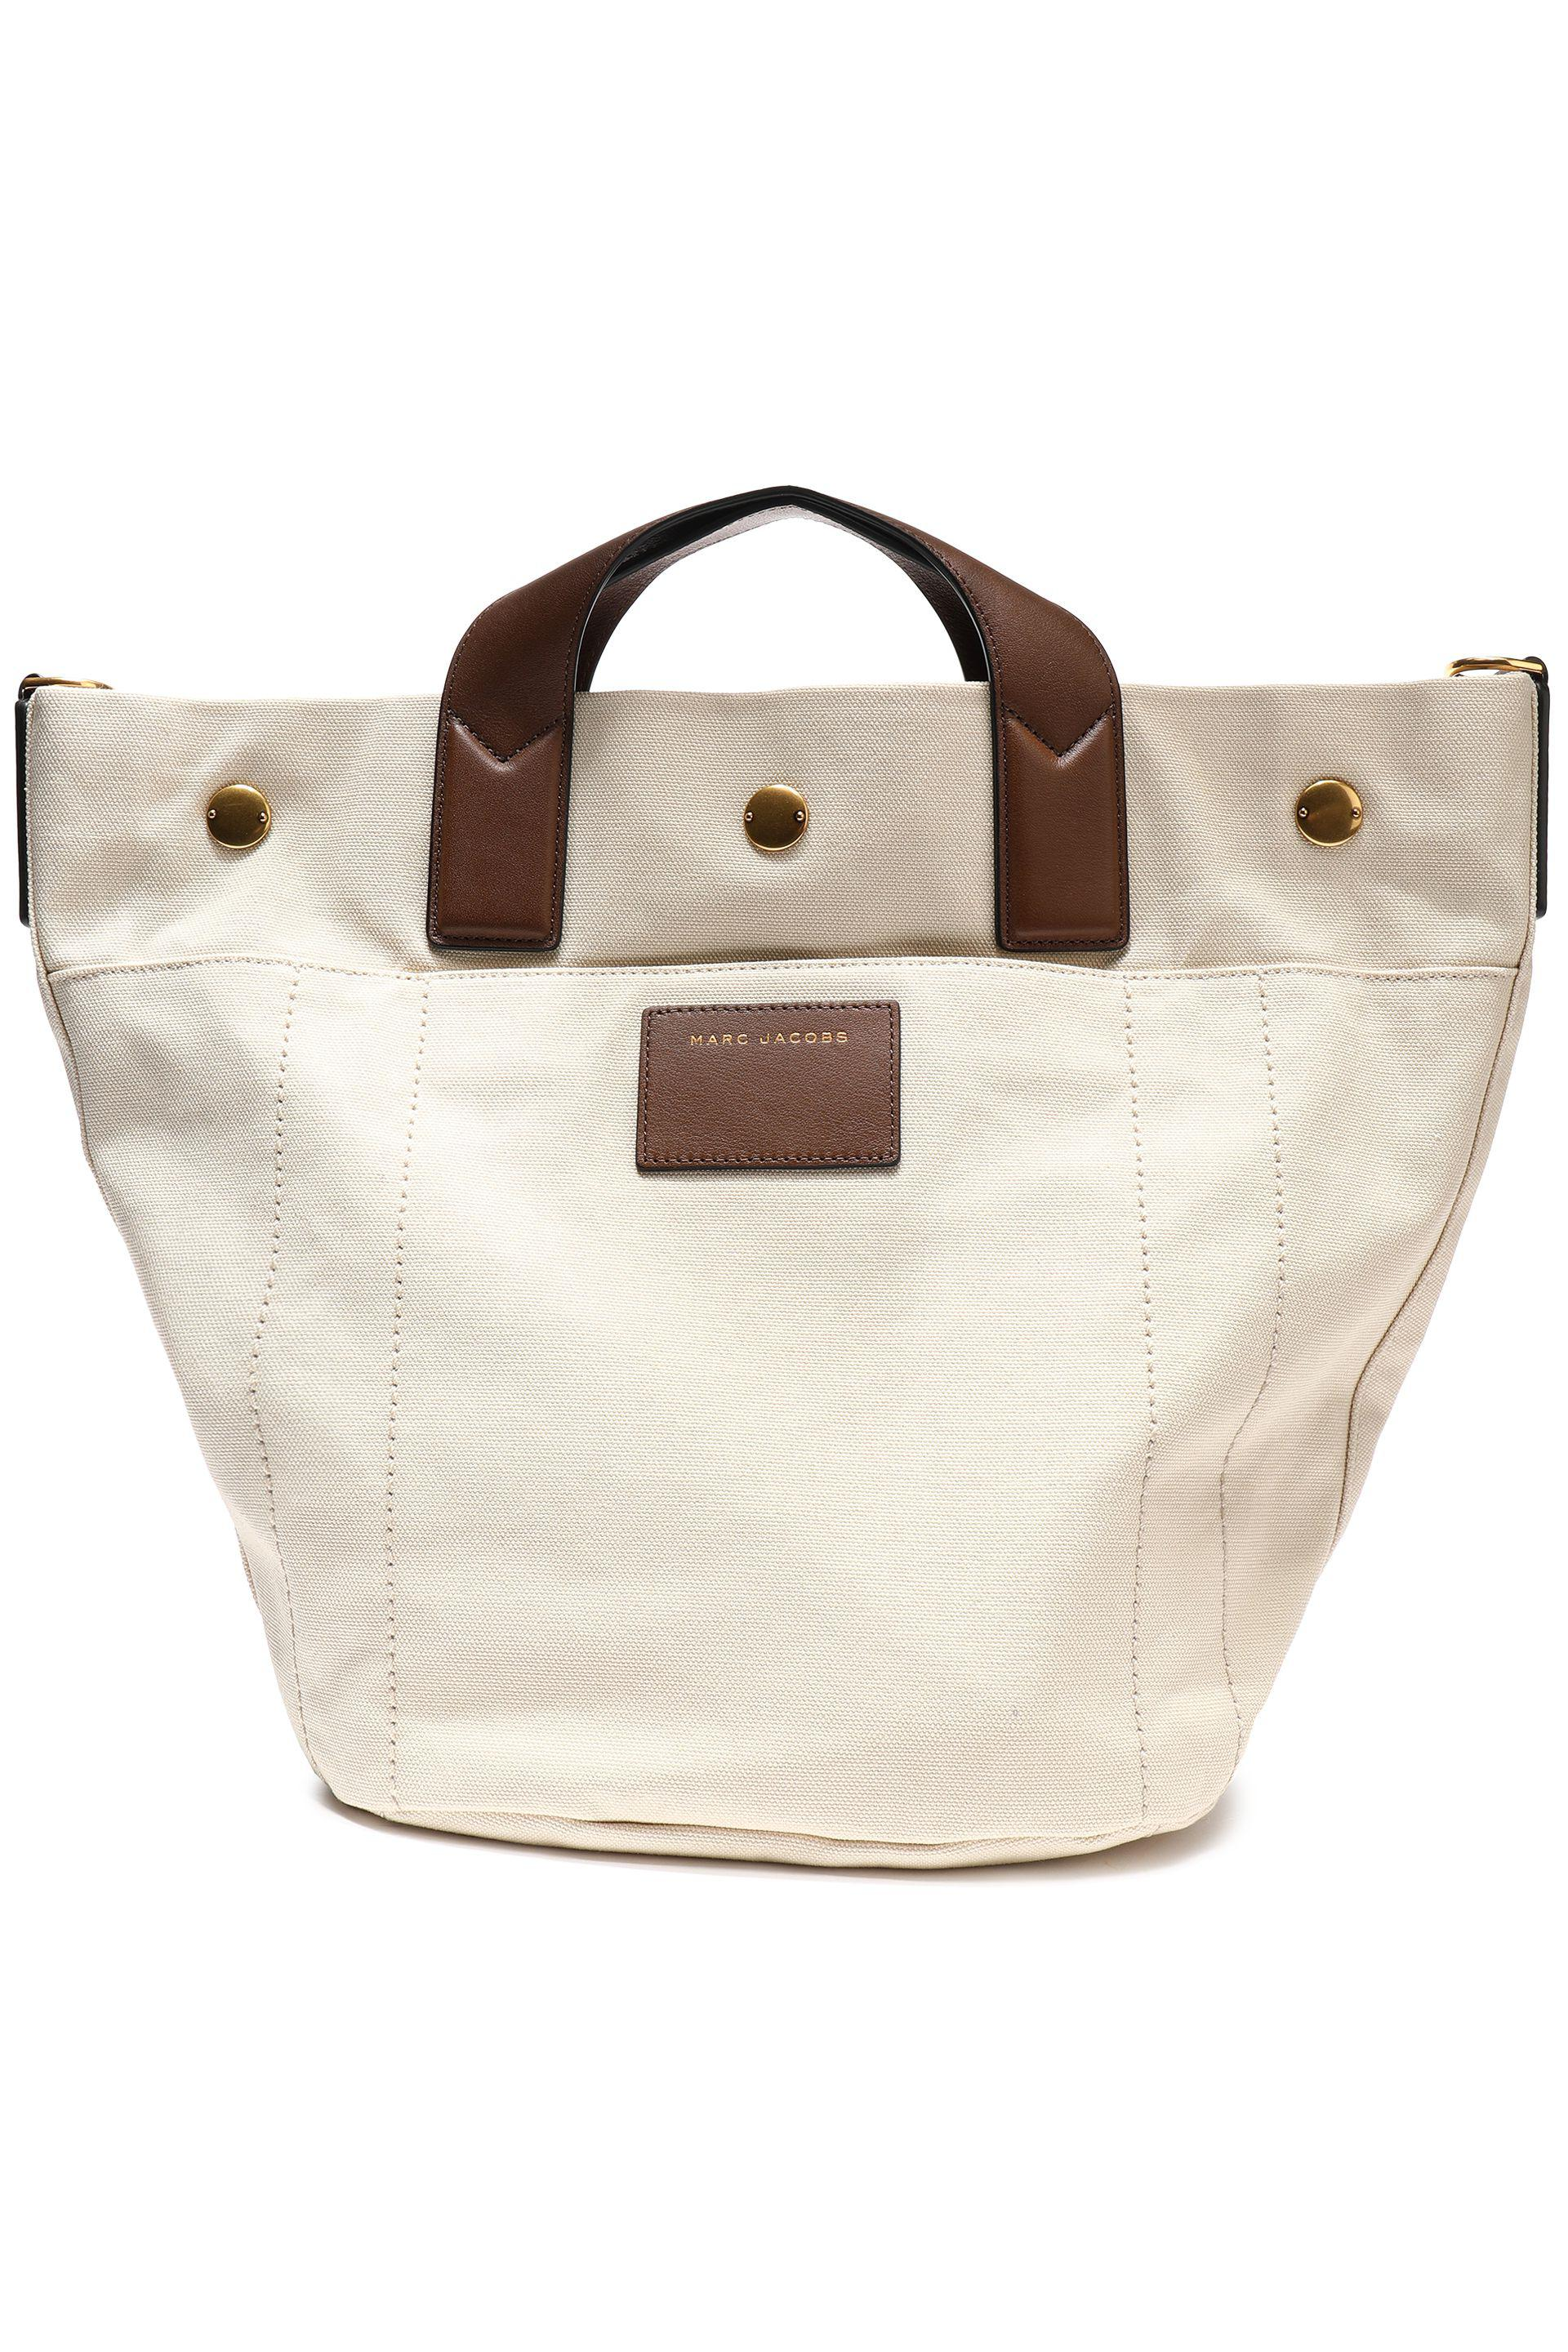 34b8cdf36762 Marc Jacobs Leather-trimmed Canvas Tote - Lyst